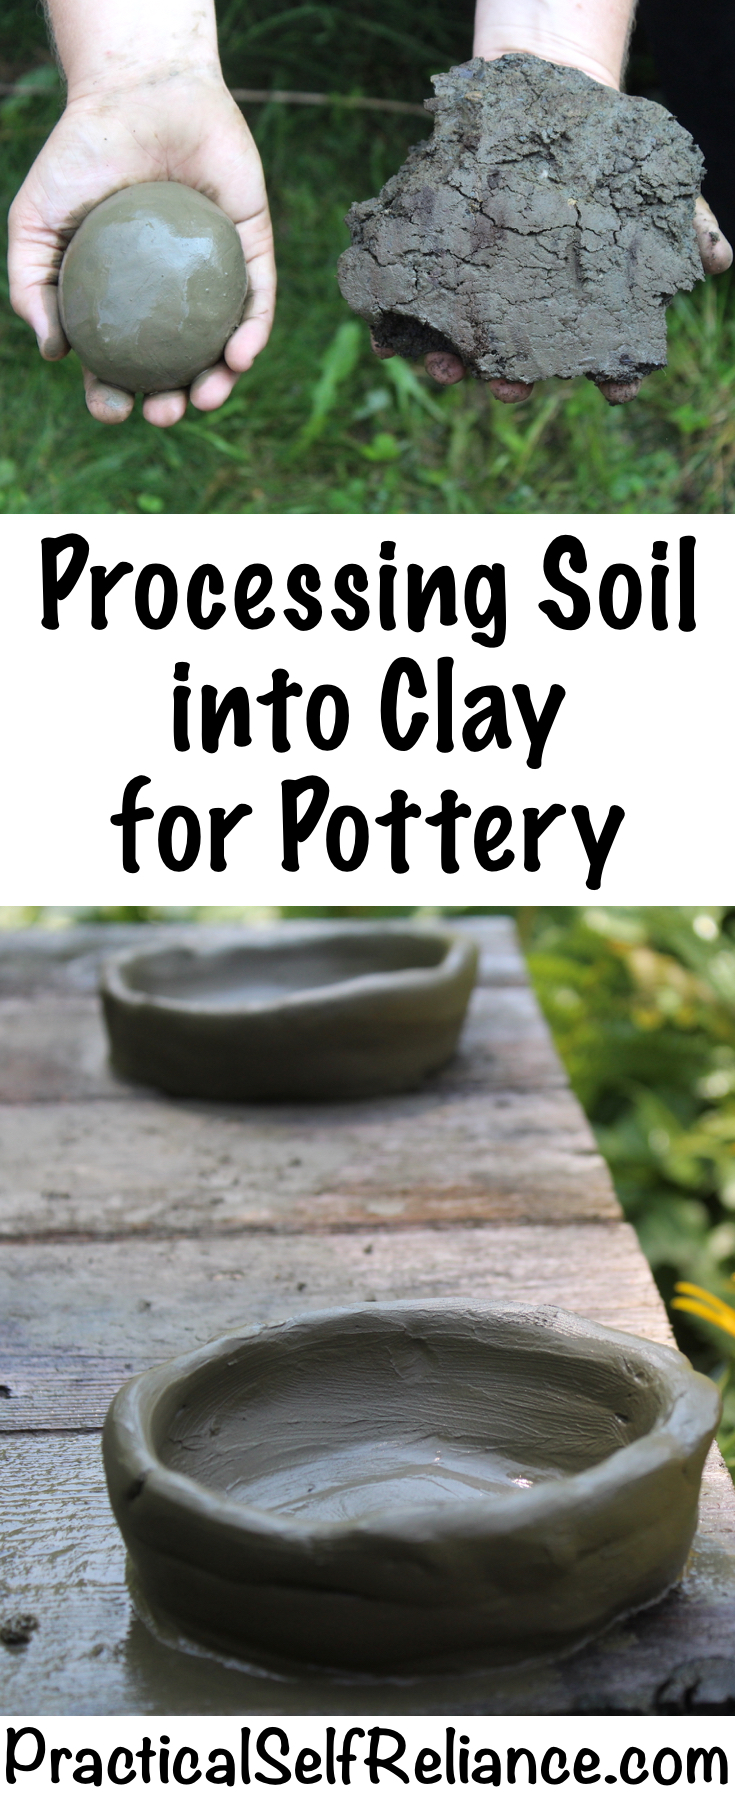 Processing Soil into Clay for Pottery ~ How to Make Clay from Soil #clay #pottery  #homesteading #selfsufficiency #prepper #preparedness #survival